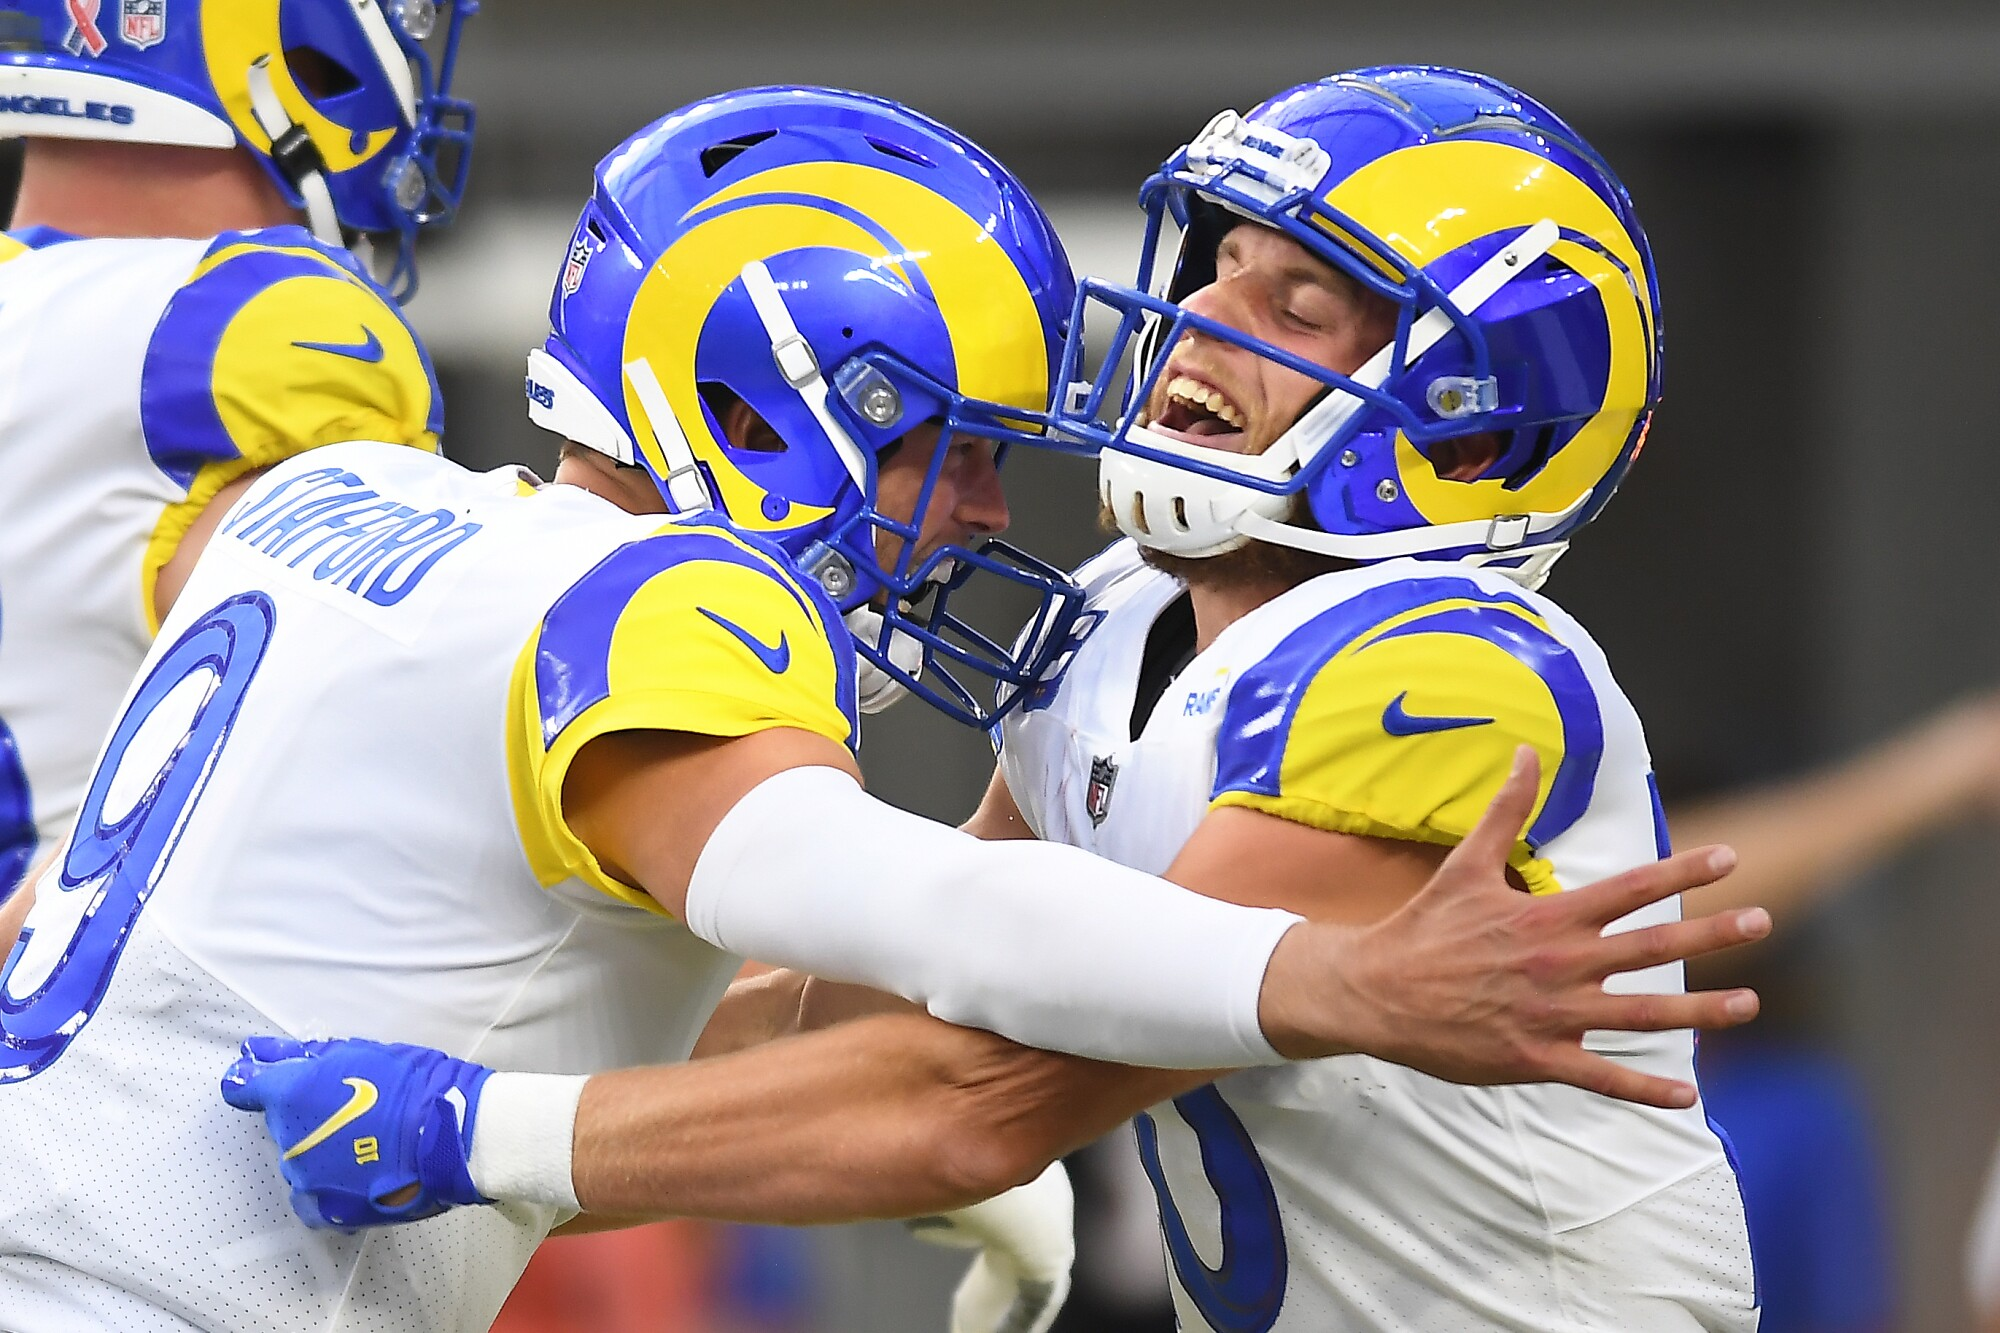 Rams quarterback Matthew Stafford, left, celebrates his touchdown pass with wide receiver Cooper Kupp.